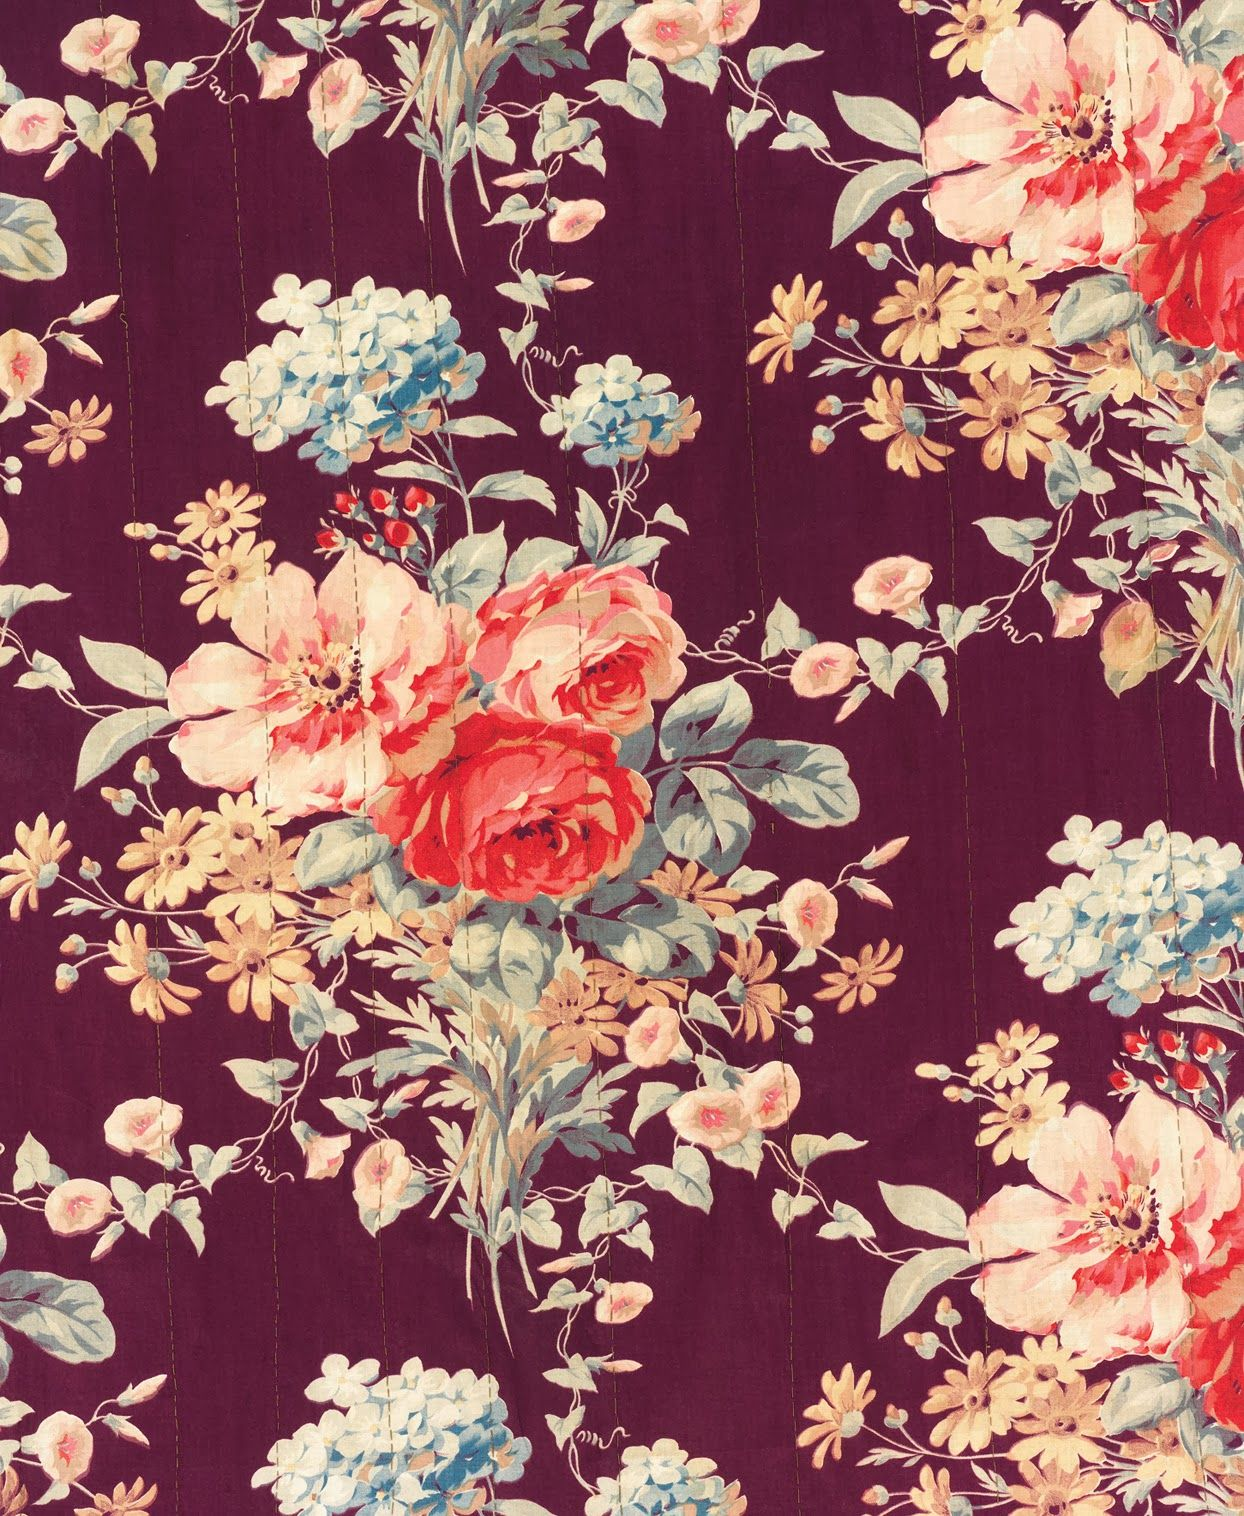 Dark Background With Vibrant Floral Pattern With Images